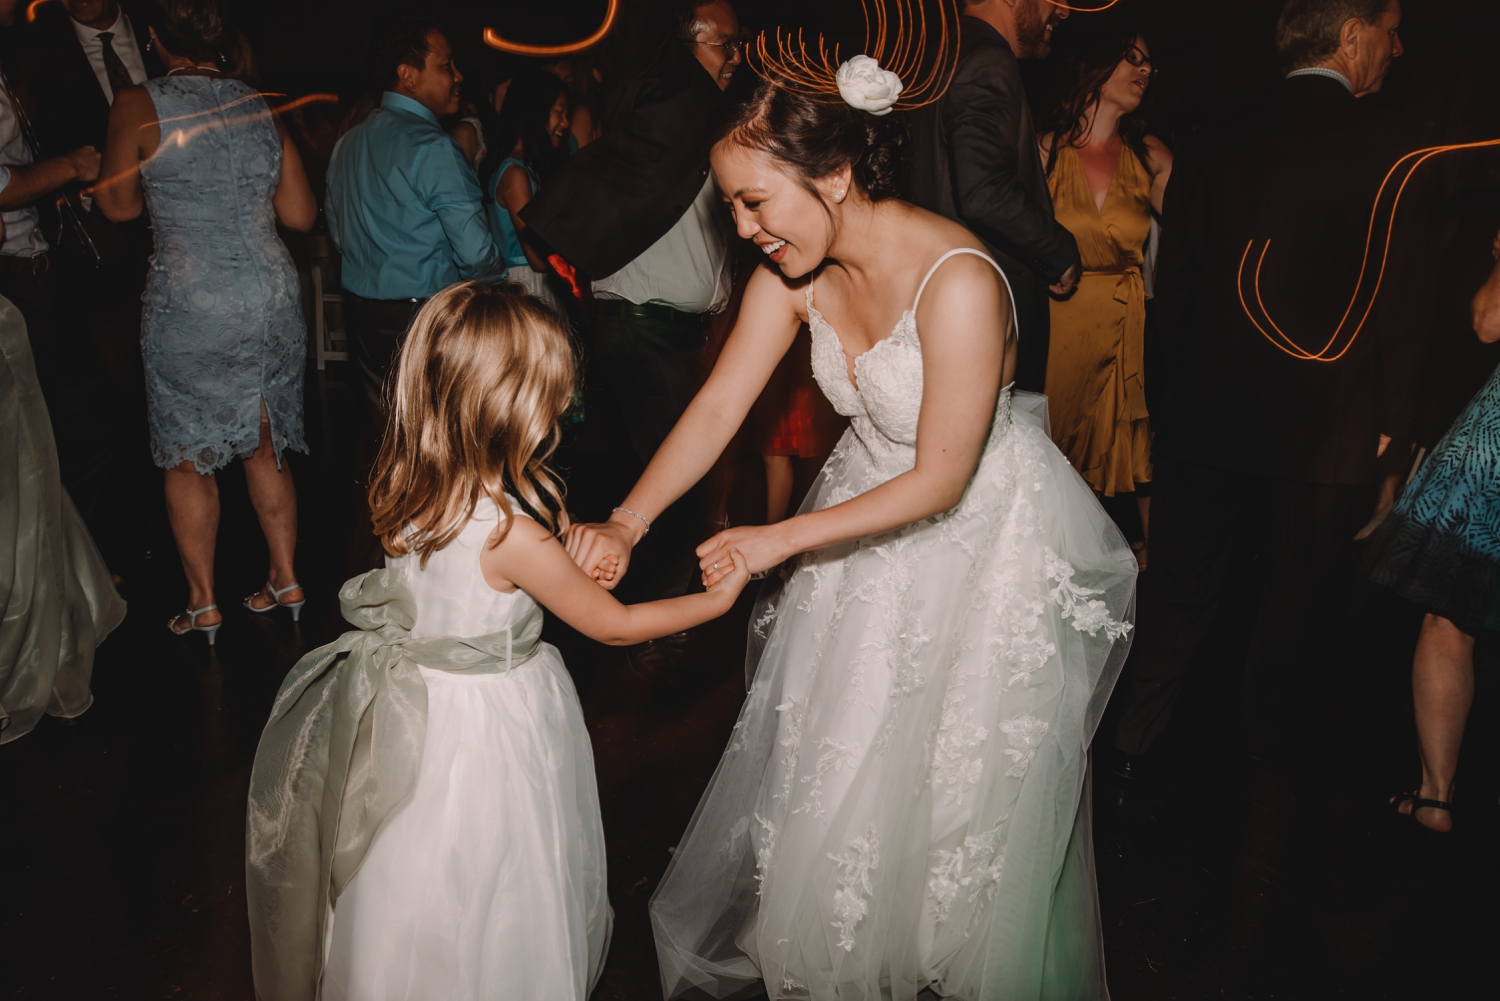 bride dancing with flower girl, The Women's Club of Evanston Wedding Photographer - The Adamkovi, Chicago wedding Photographer